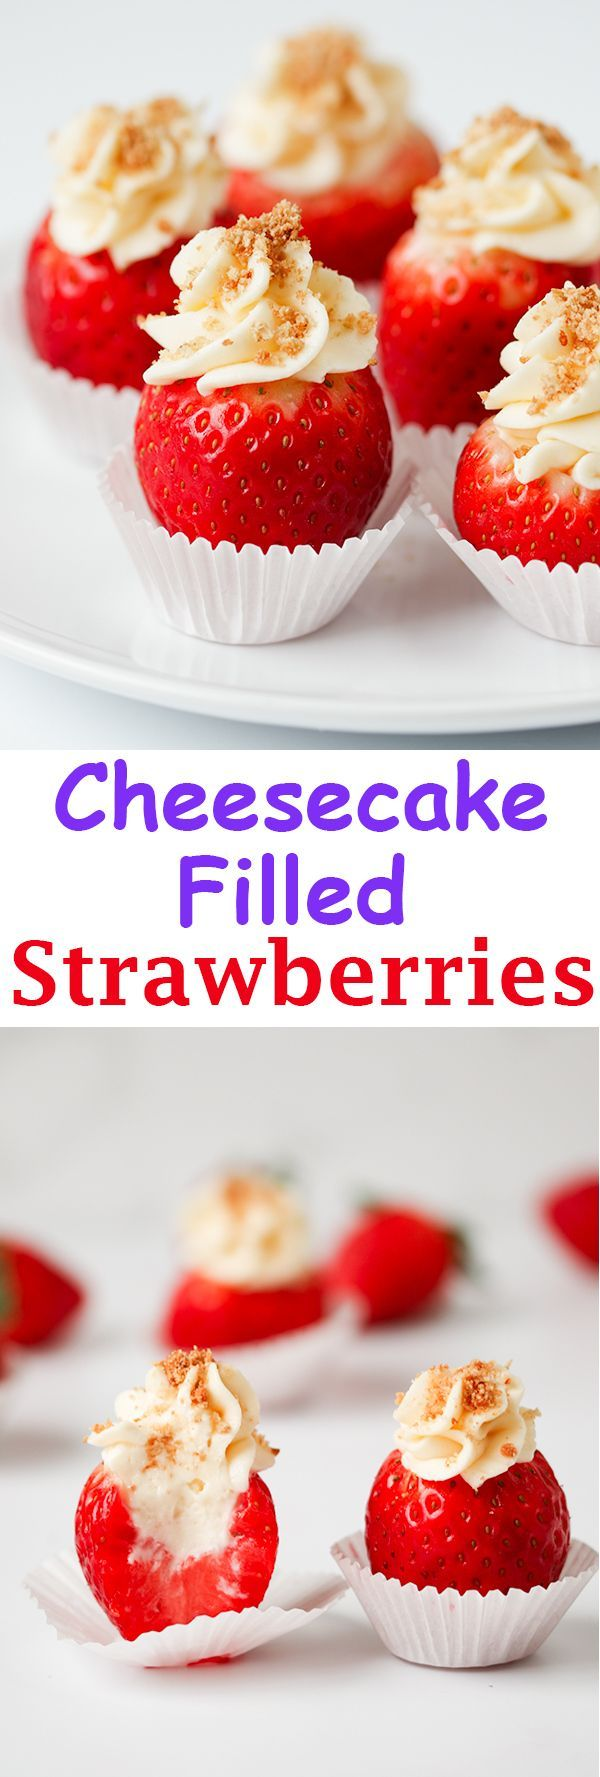 Cheesecake filled strawberries - An ultra-simple dessert – perfect for parties!